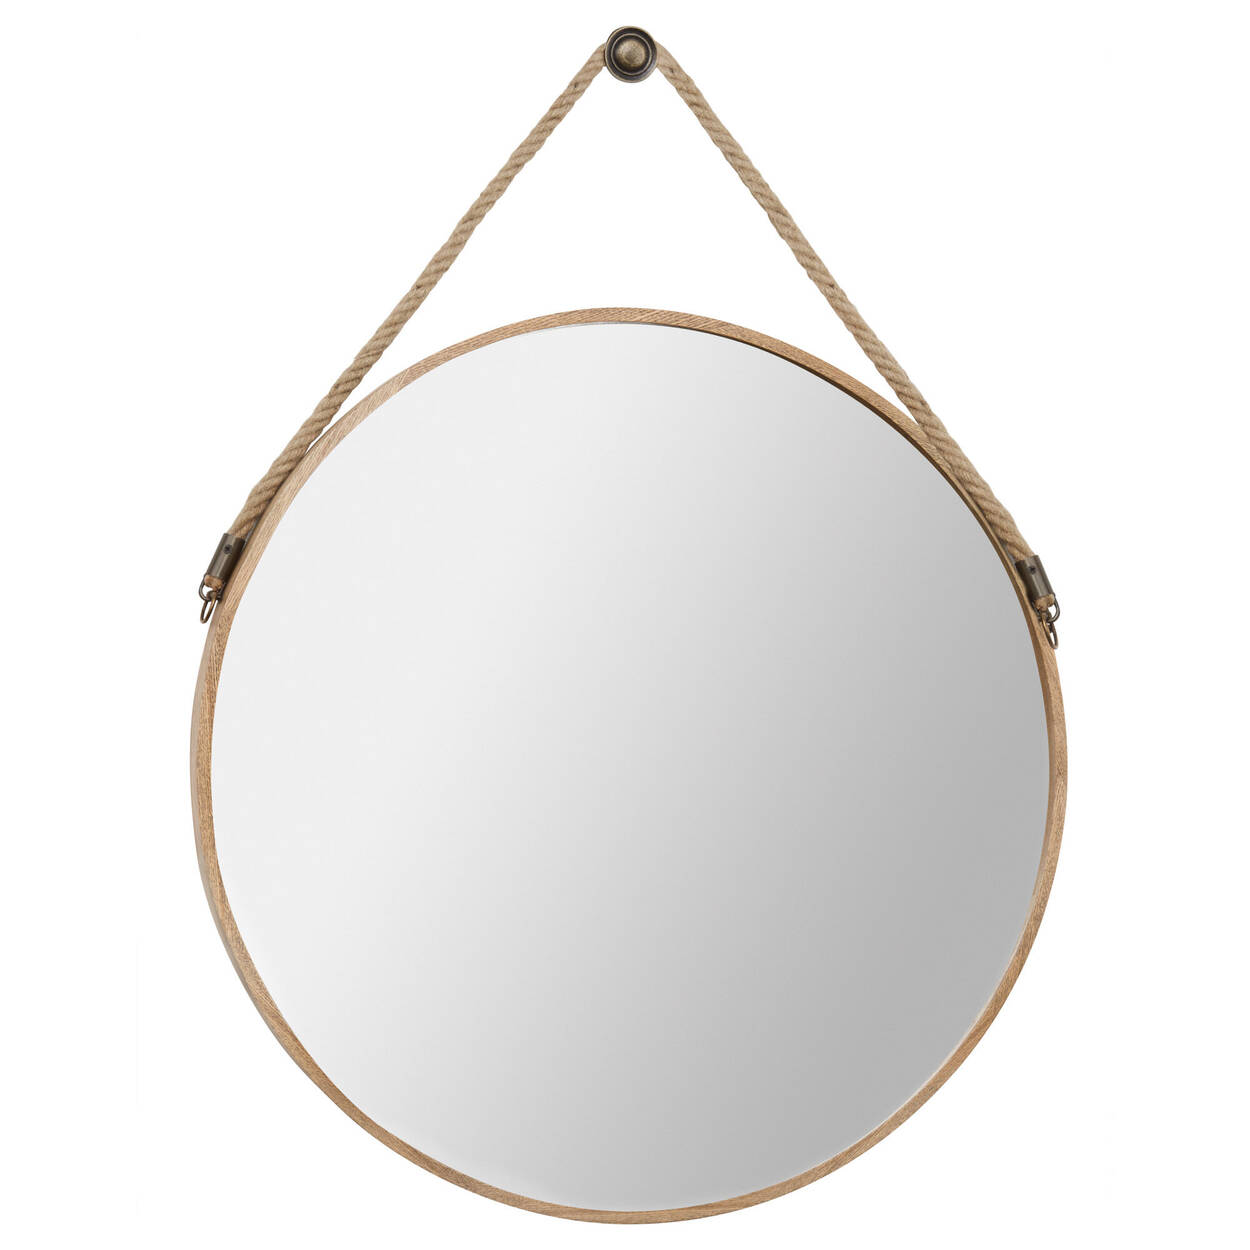 Round Hanging Mirror with Hook